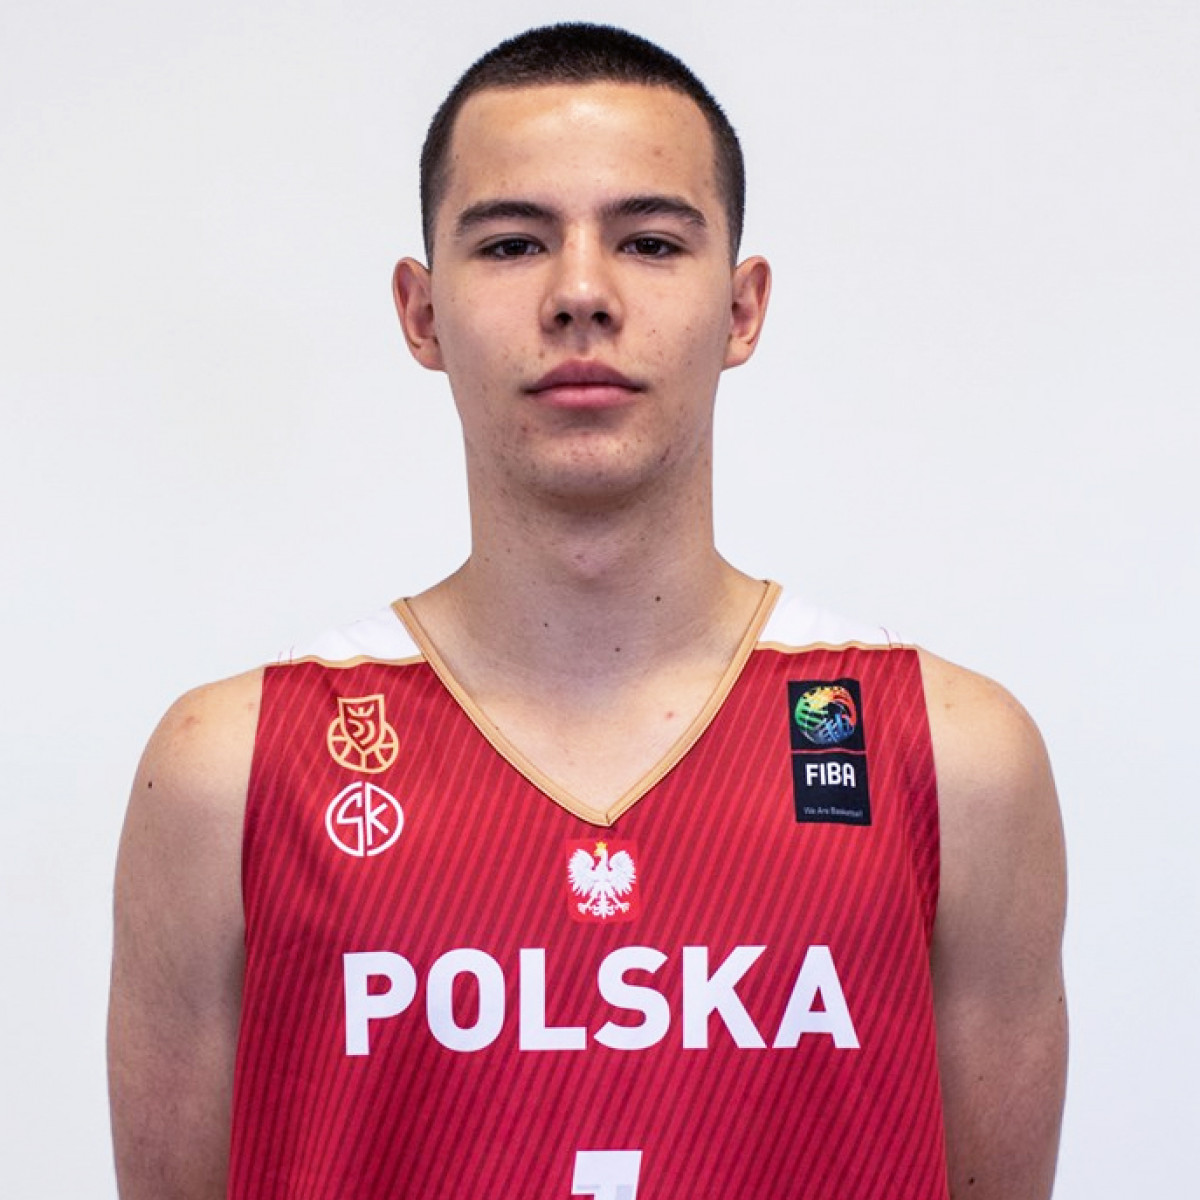 Photo of Aleksander Wisniewski, 2019-2020 season